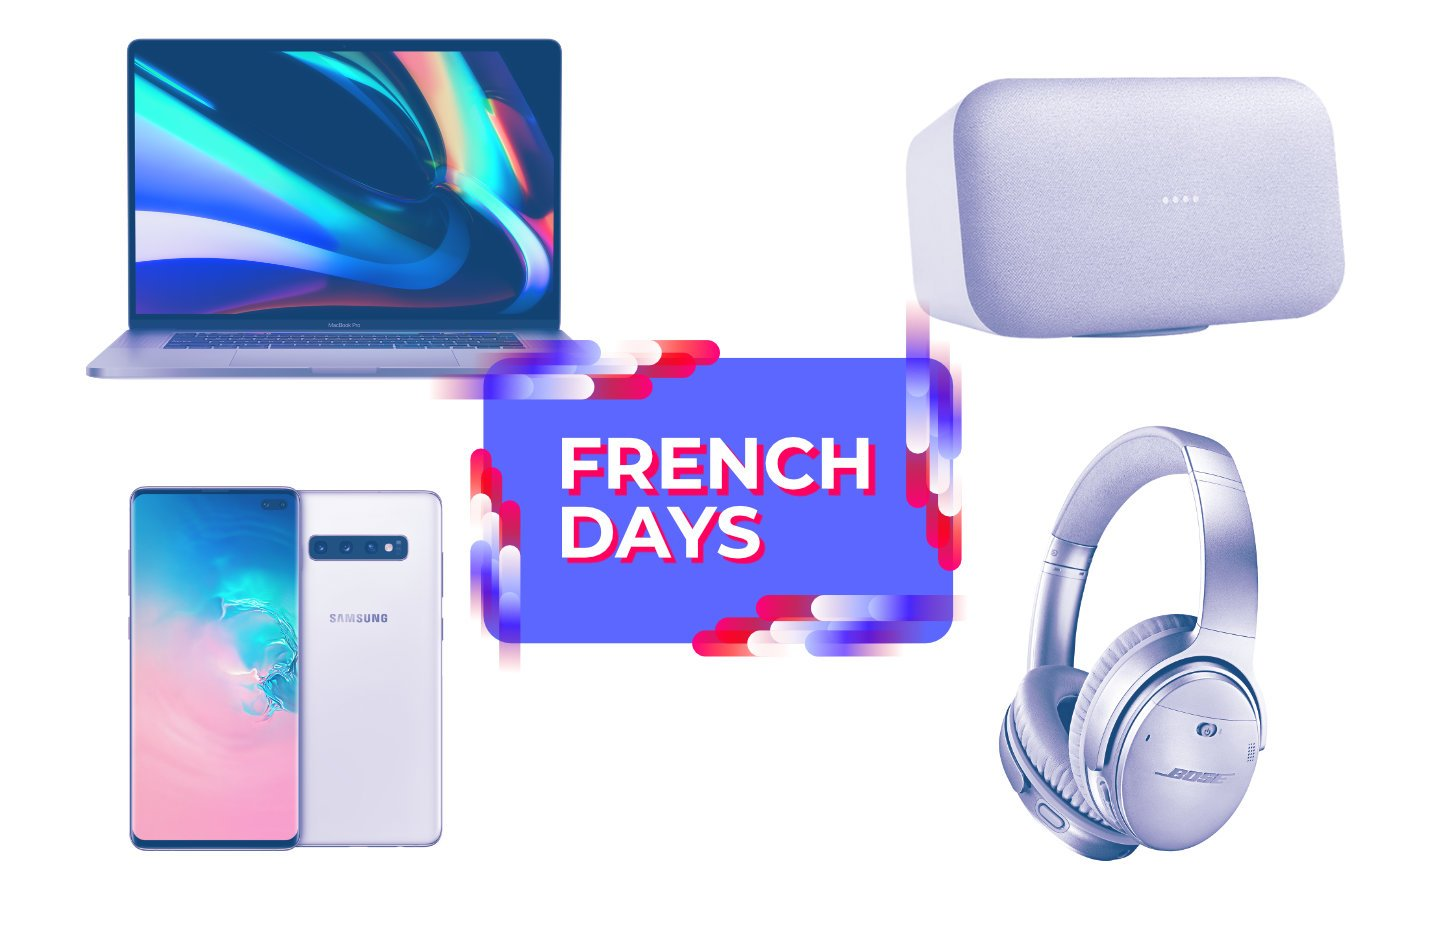 French Days Darty : quels sont les vrais bons plans disponible en ce moment ?